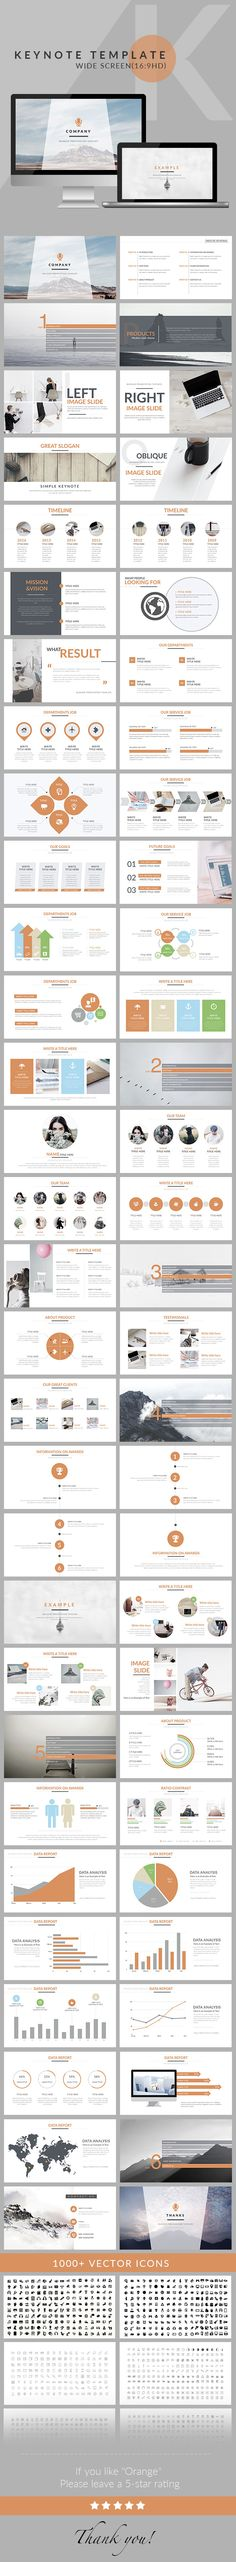 Orange - Clean trend business PowerPoint Templates by General Description No Animation Template Screen Size Free Font Used 60 unique slides Creative Slides Business Slides Easy Cu Web Design, Slide Design, Layout Design, Business Powerpoint Templates, Powerpoint Presentation Templates, Keynote Template, Mise En Page Web, Design Presentation, Business Presentation